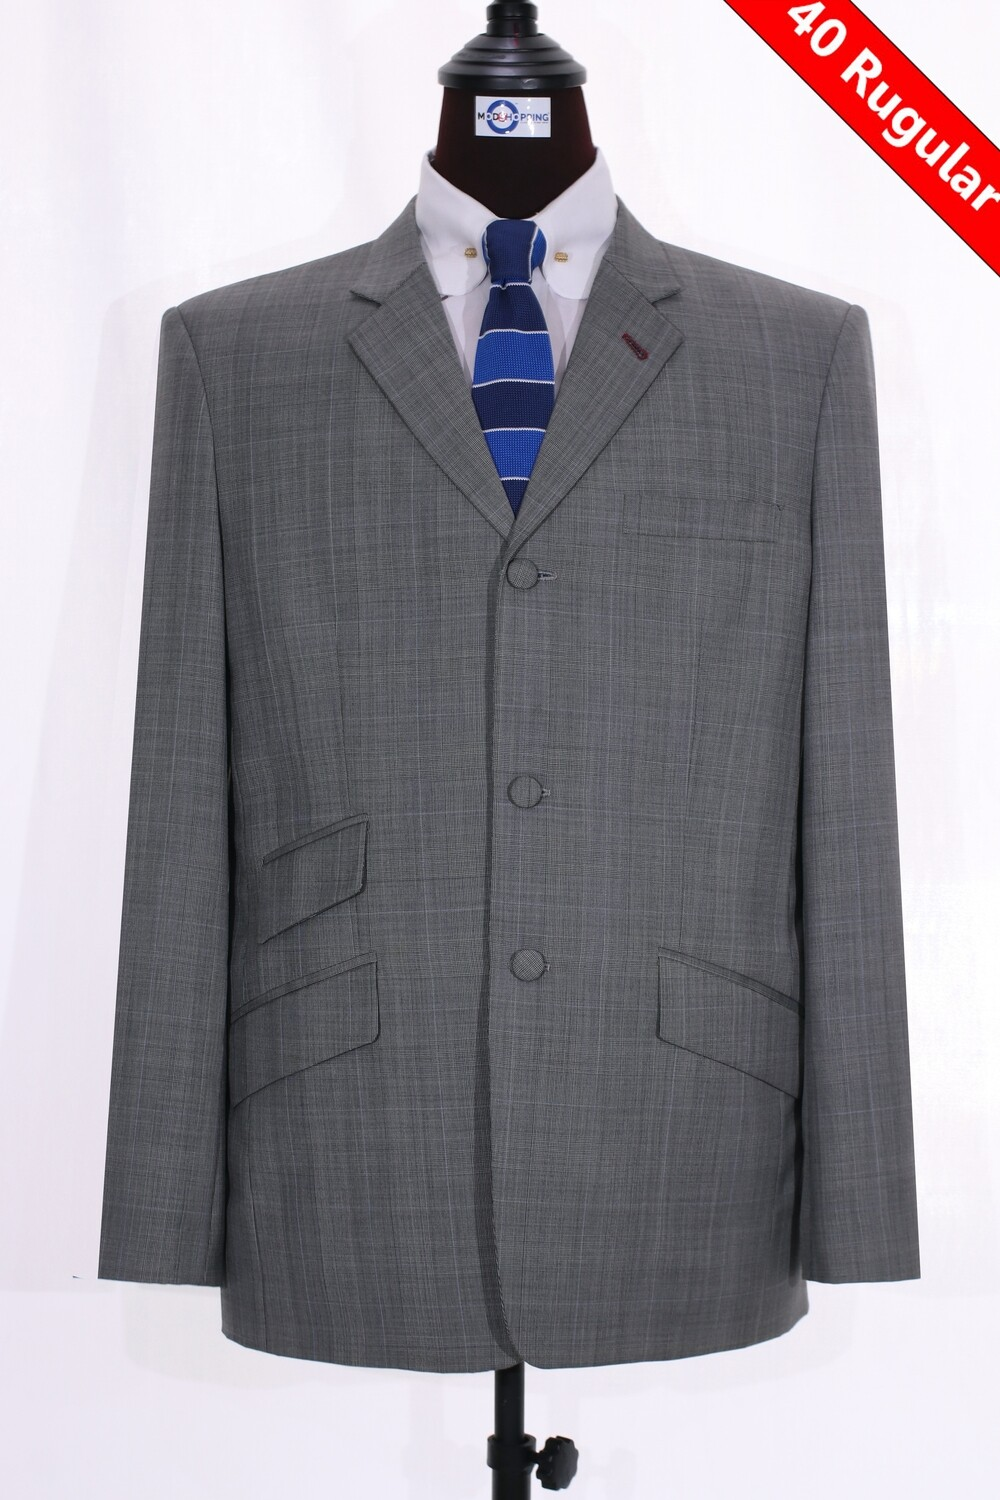 Sale Only This Jacket Grey Prince Of Wales Check